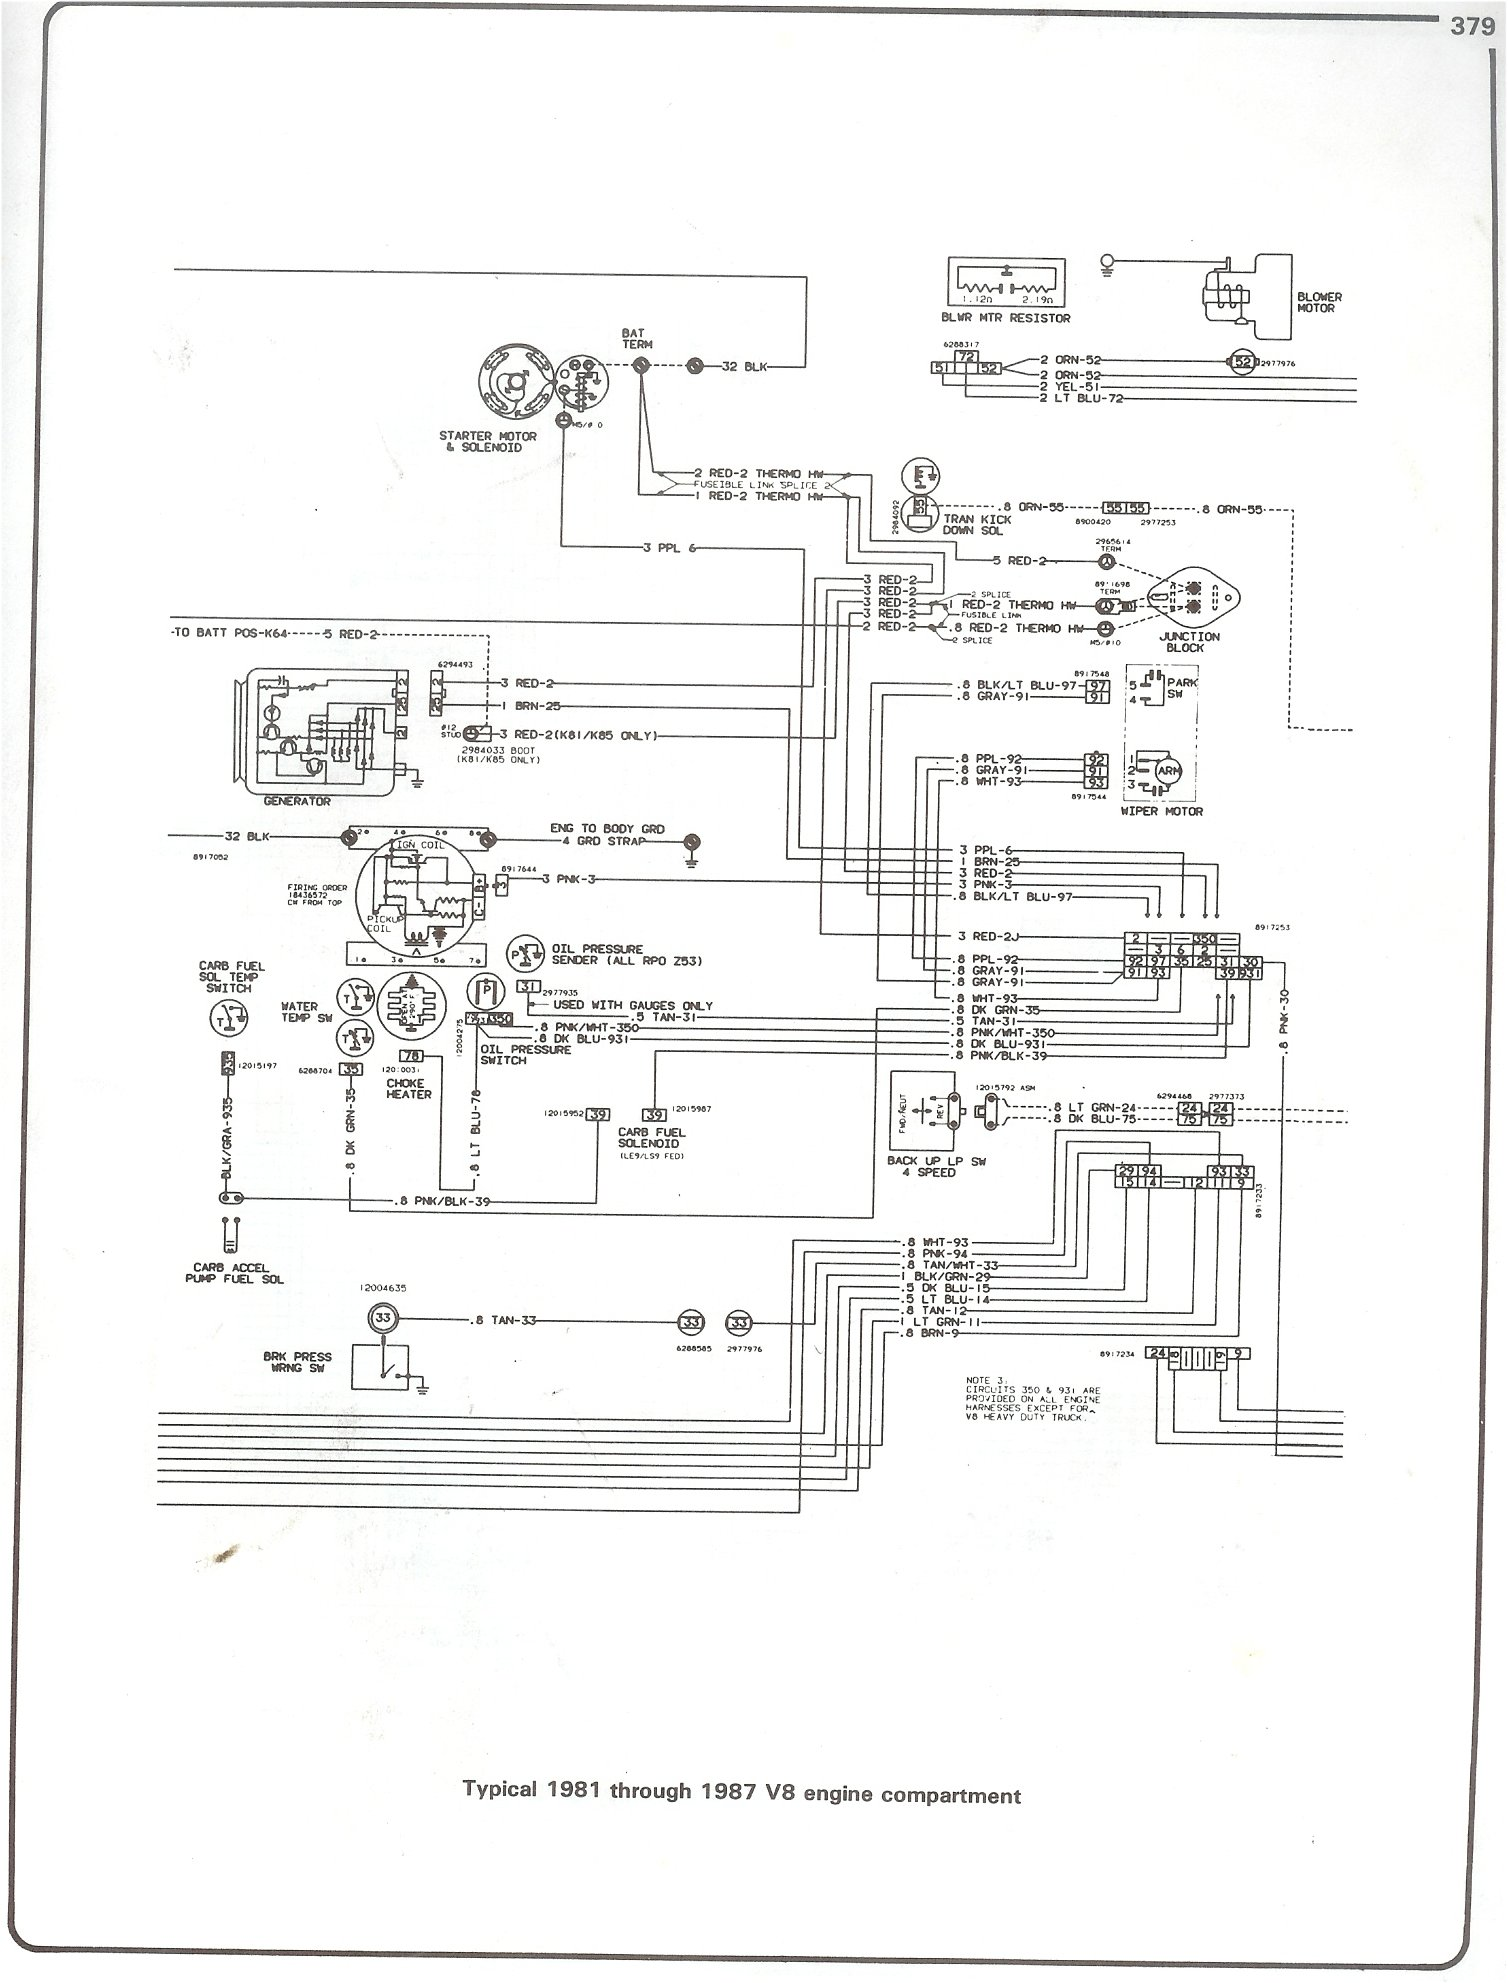 81 87_V8_engine complete 73 87 wiring diagrams  at gsmx.co